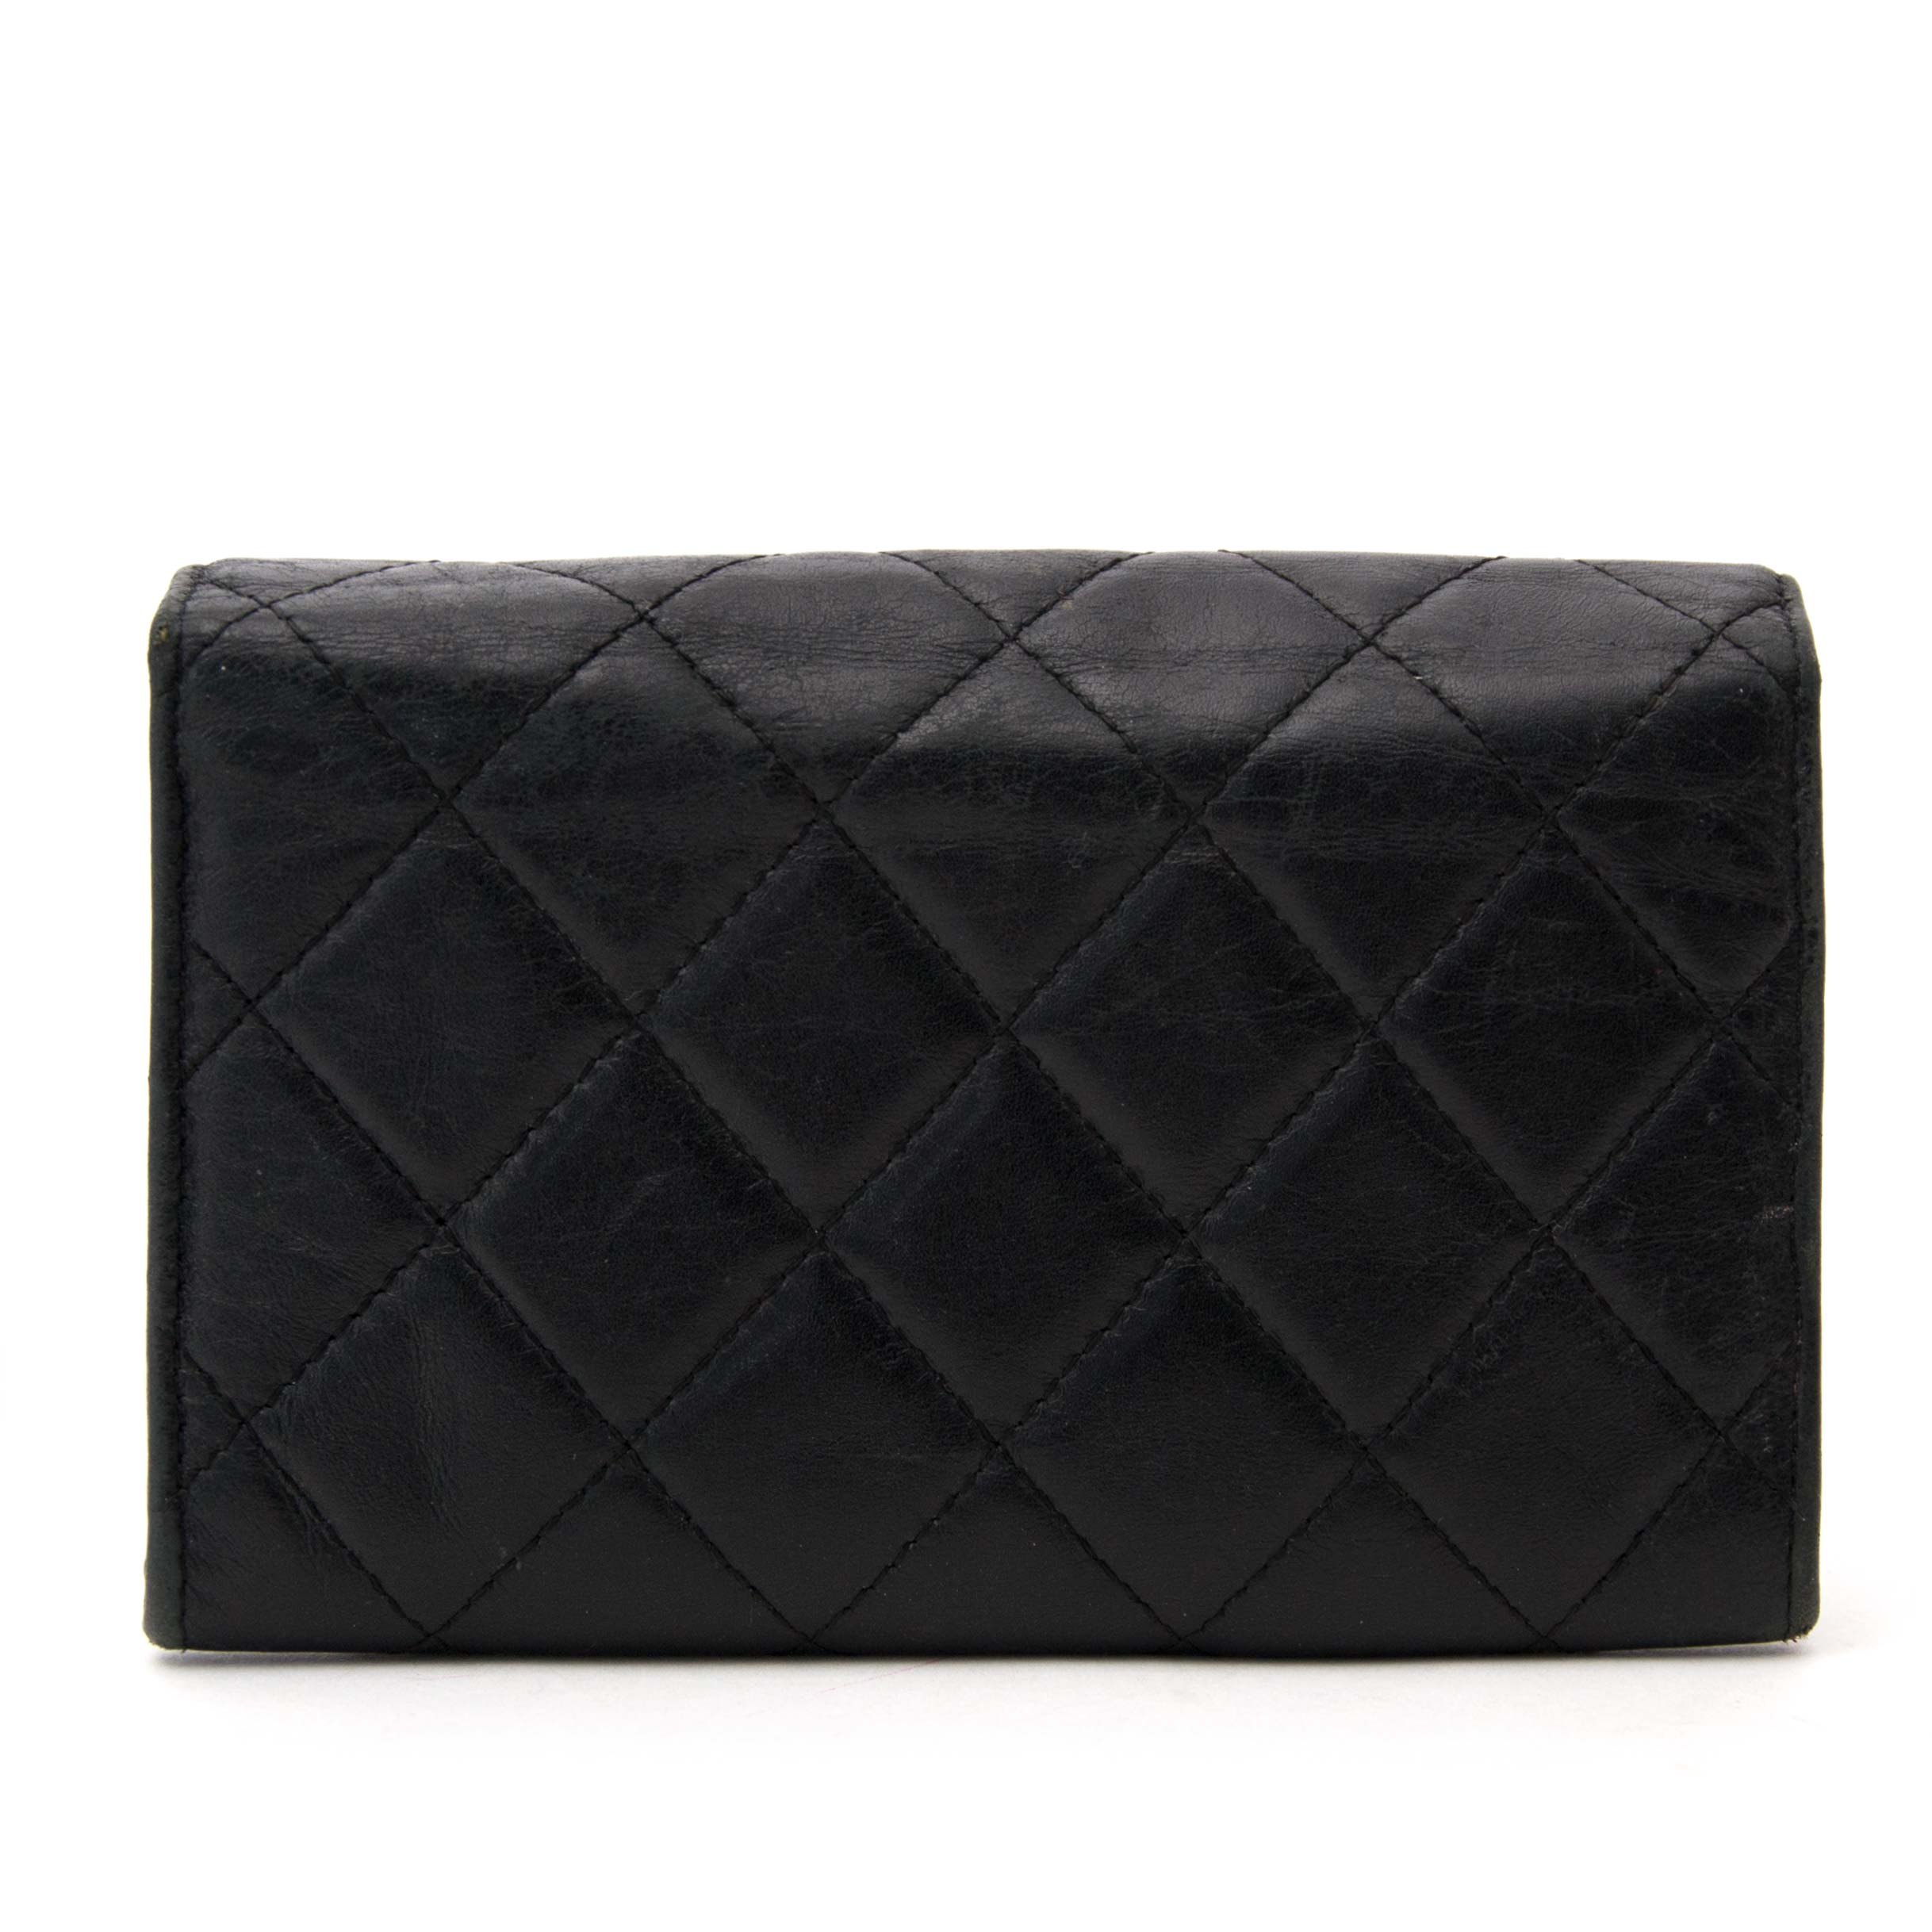 Chanel Chanel Ligne Cambon Flap Wallet for sale